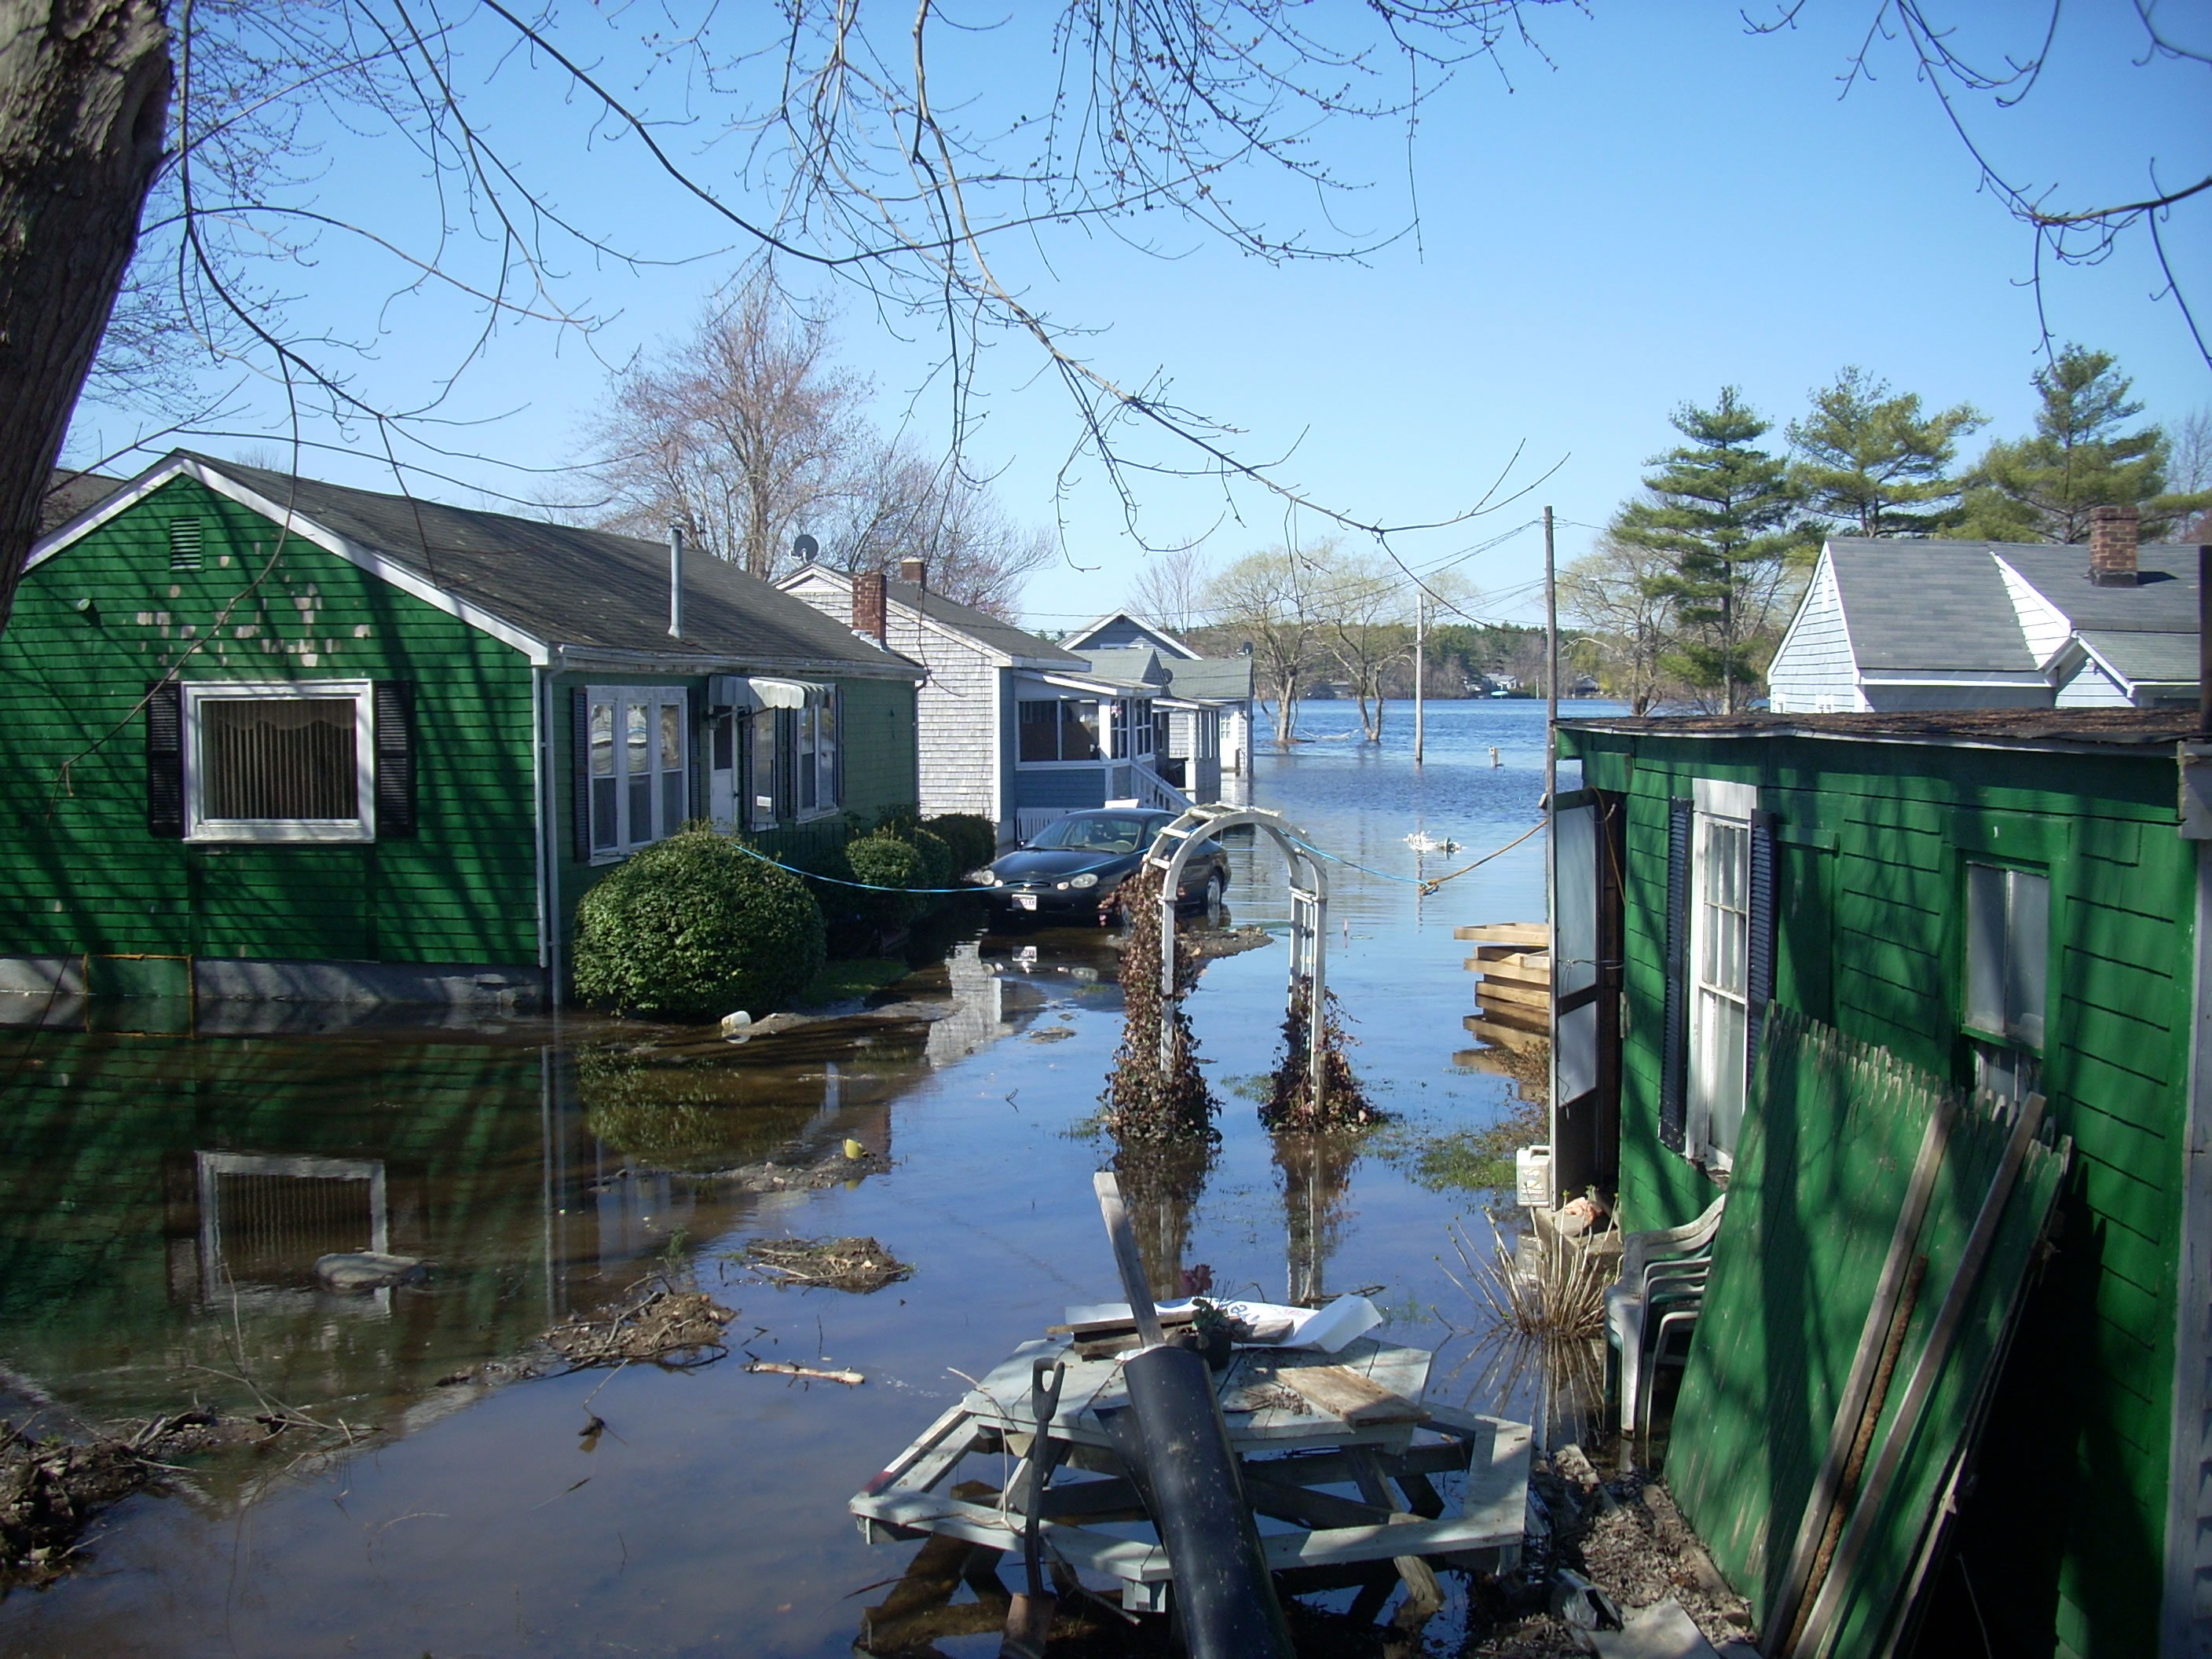 Another Lakeville Flood photo taken nearer the boat landing